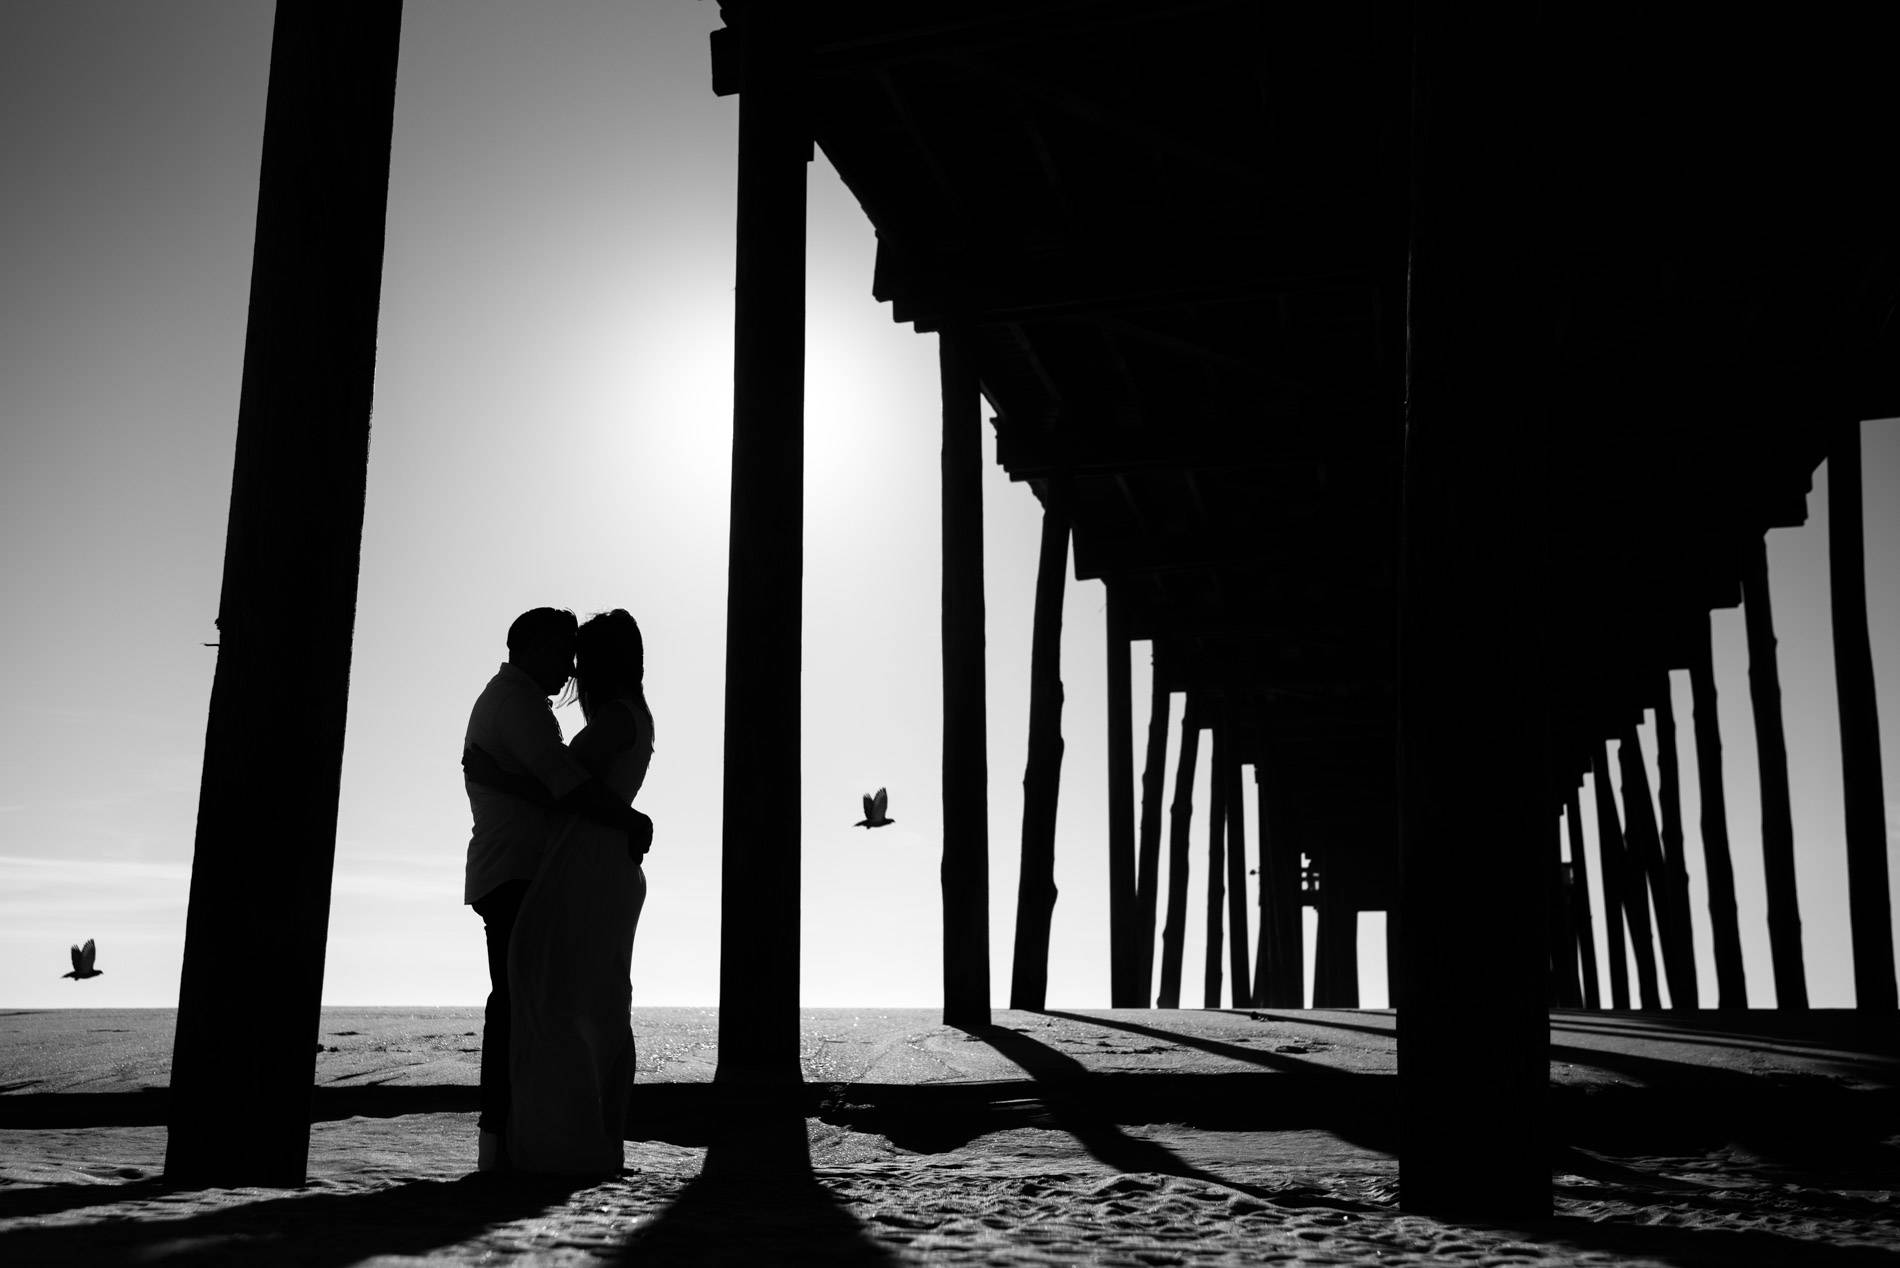 Ocean-City-MD-Engagement-photos (8 of 15)